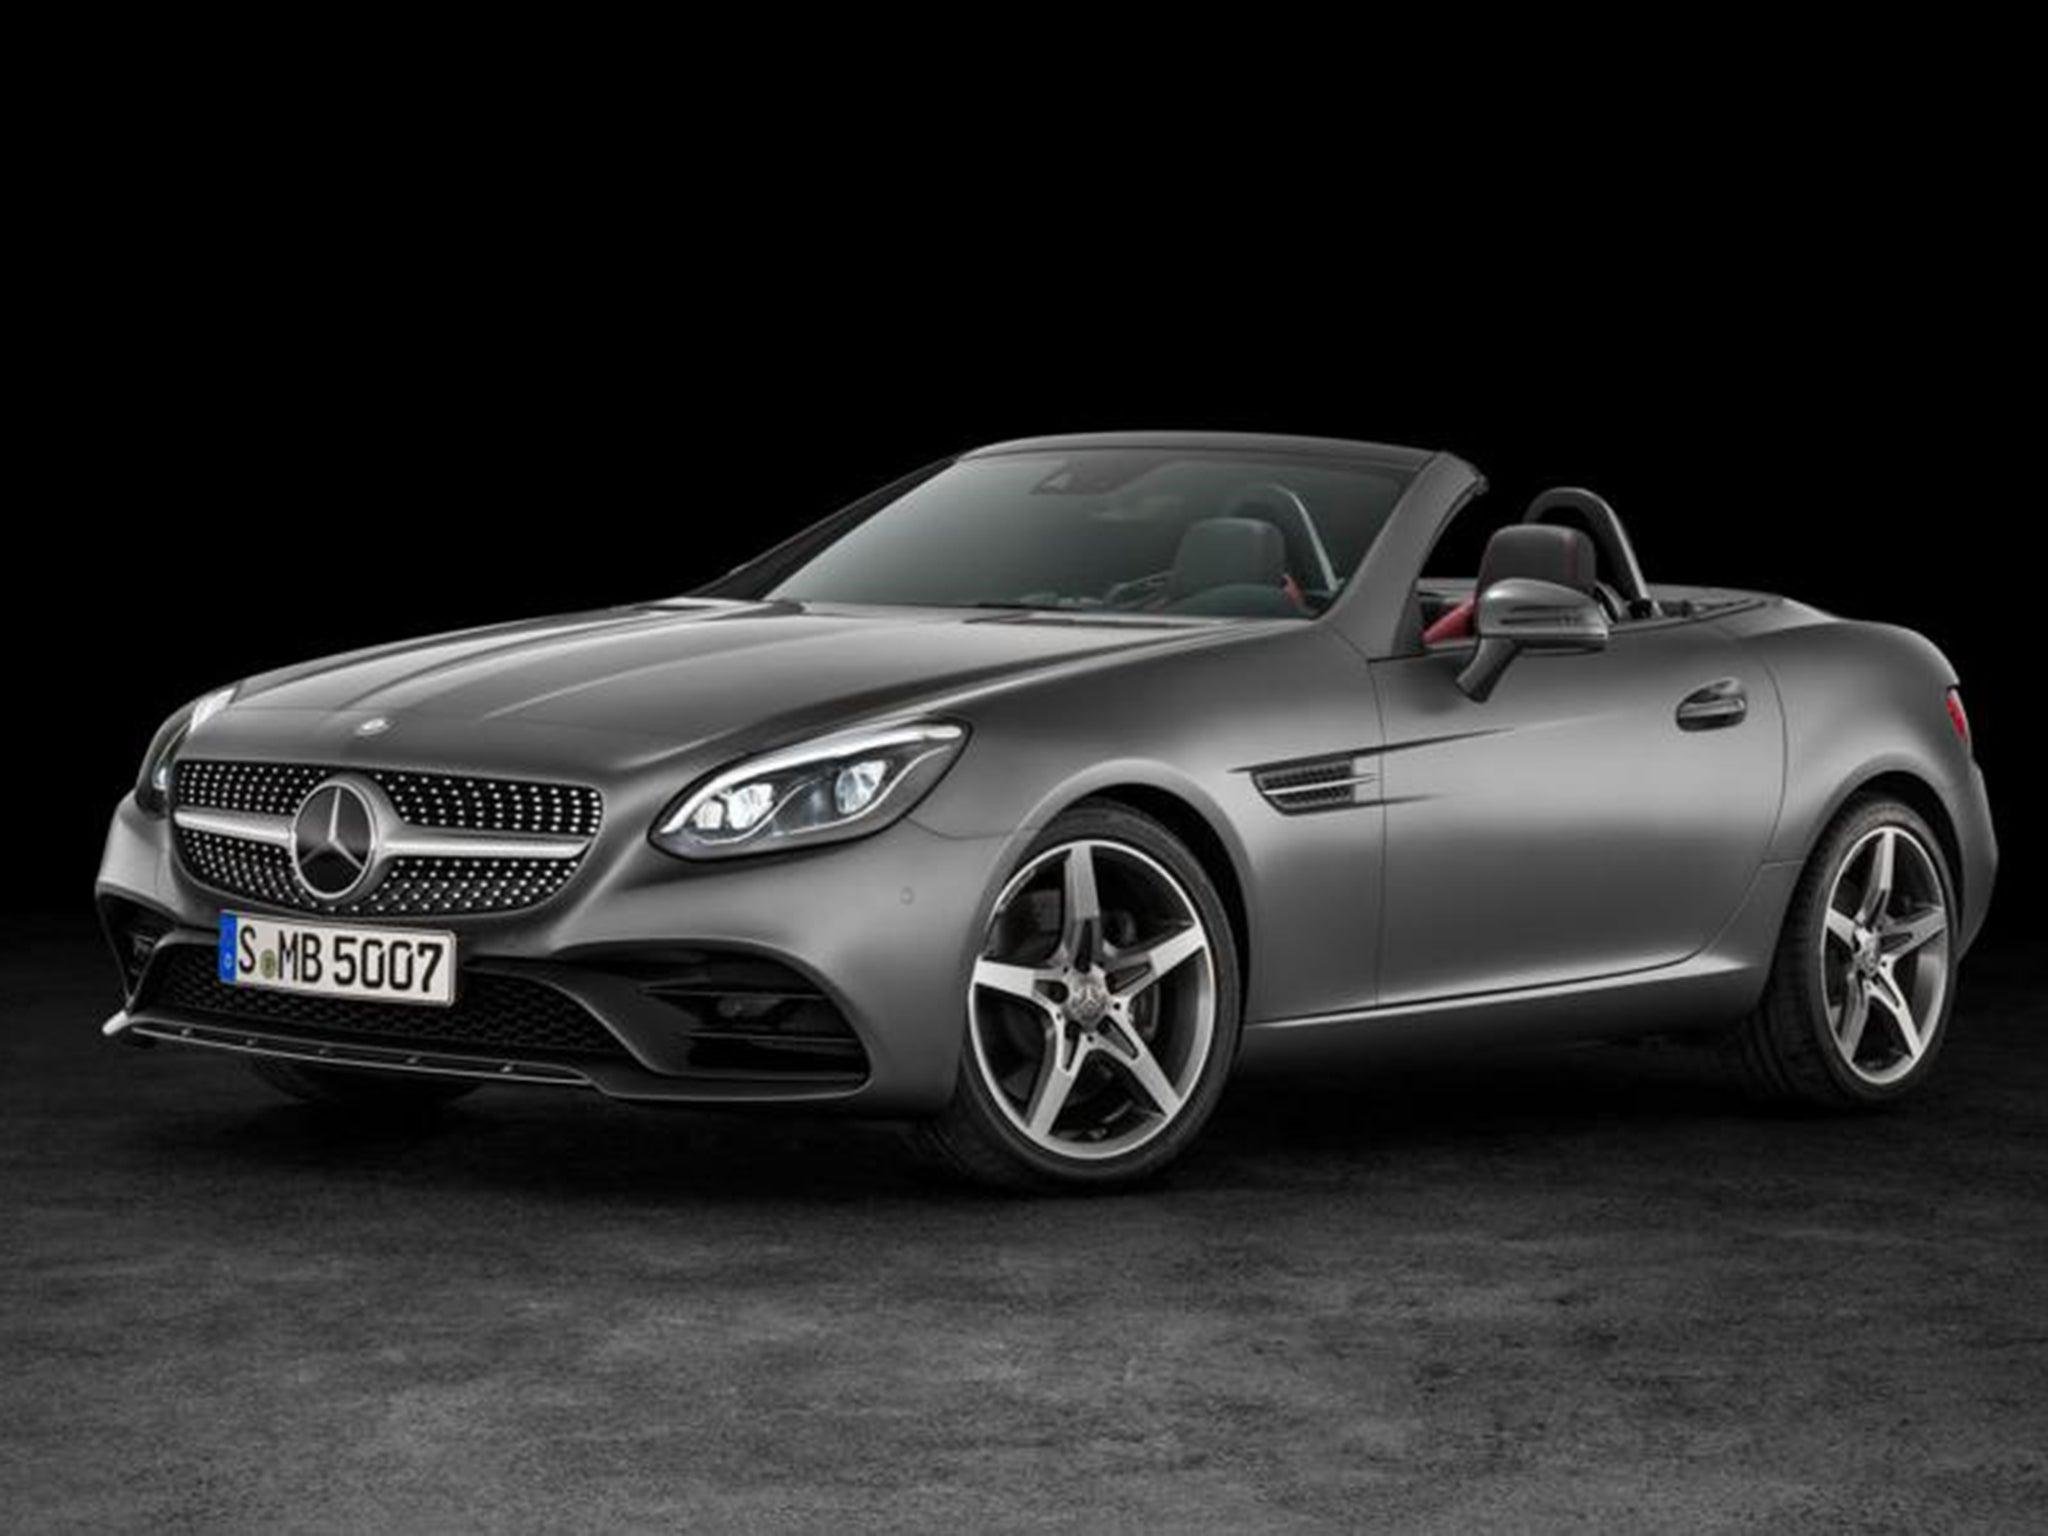 mercedes-benz slk to become slc in spring | the independent